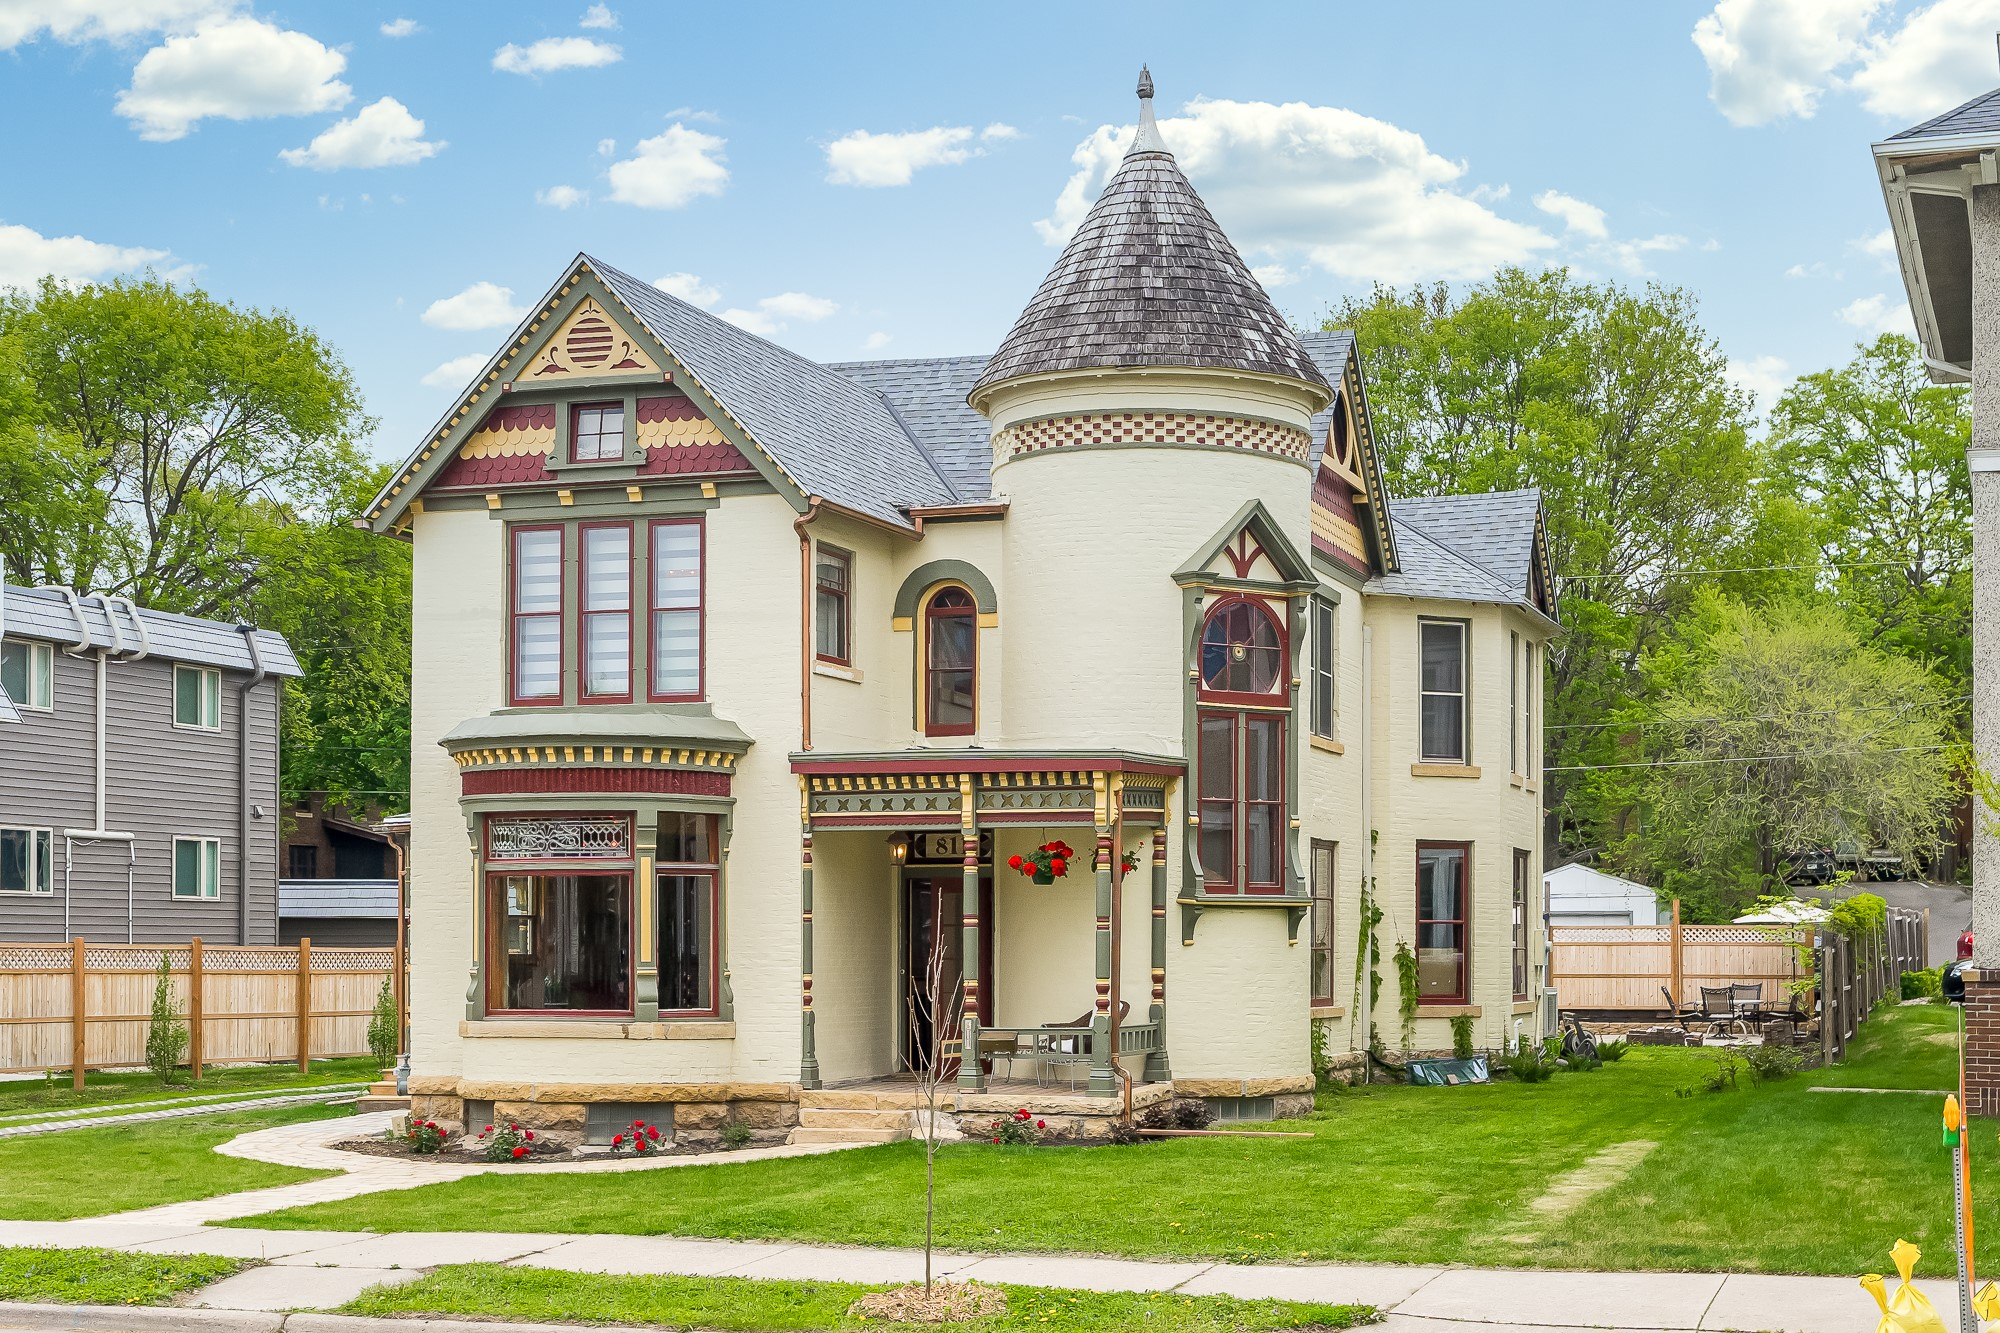 Moulin Rouge House now after a complete restoration project! Cream colored house with tower.